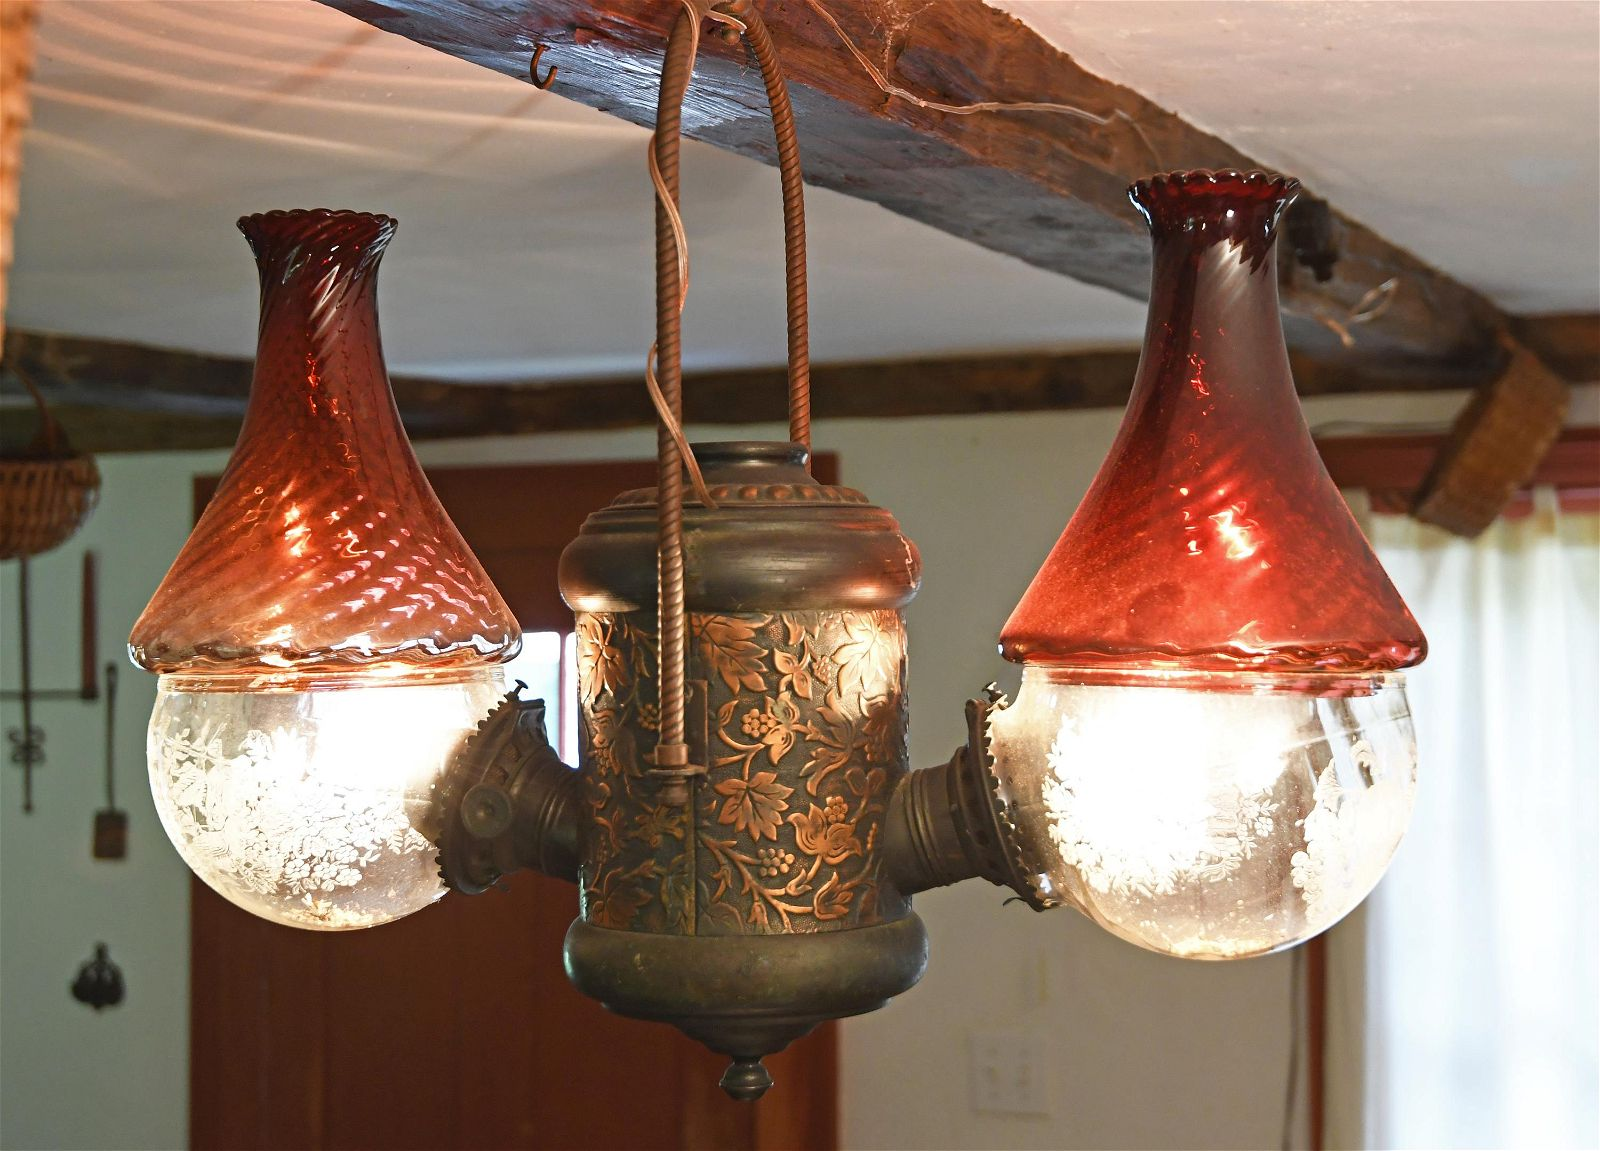 LATE 19TH C. DOUBLE ANGLE LAMP.